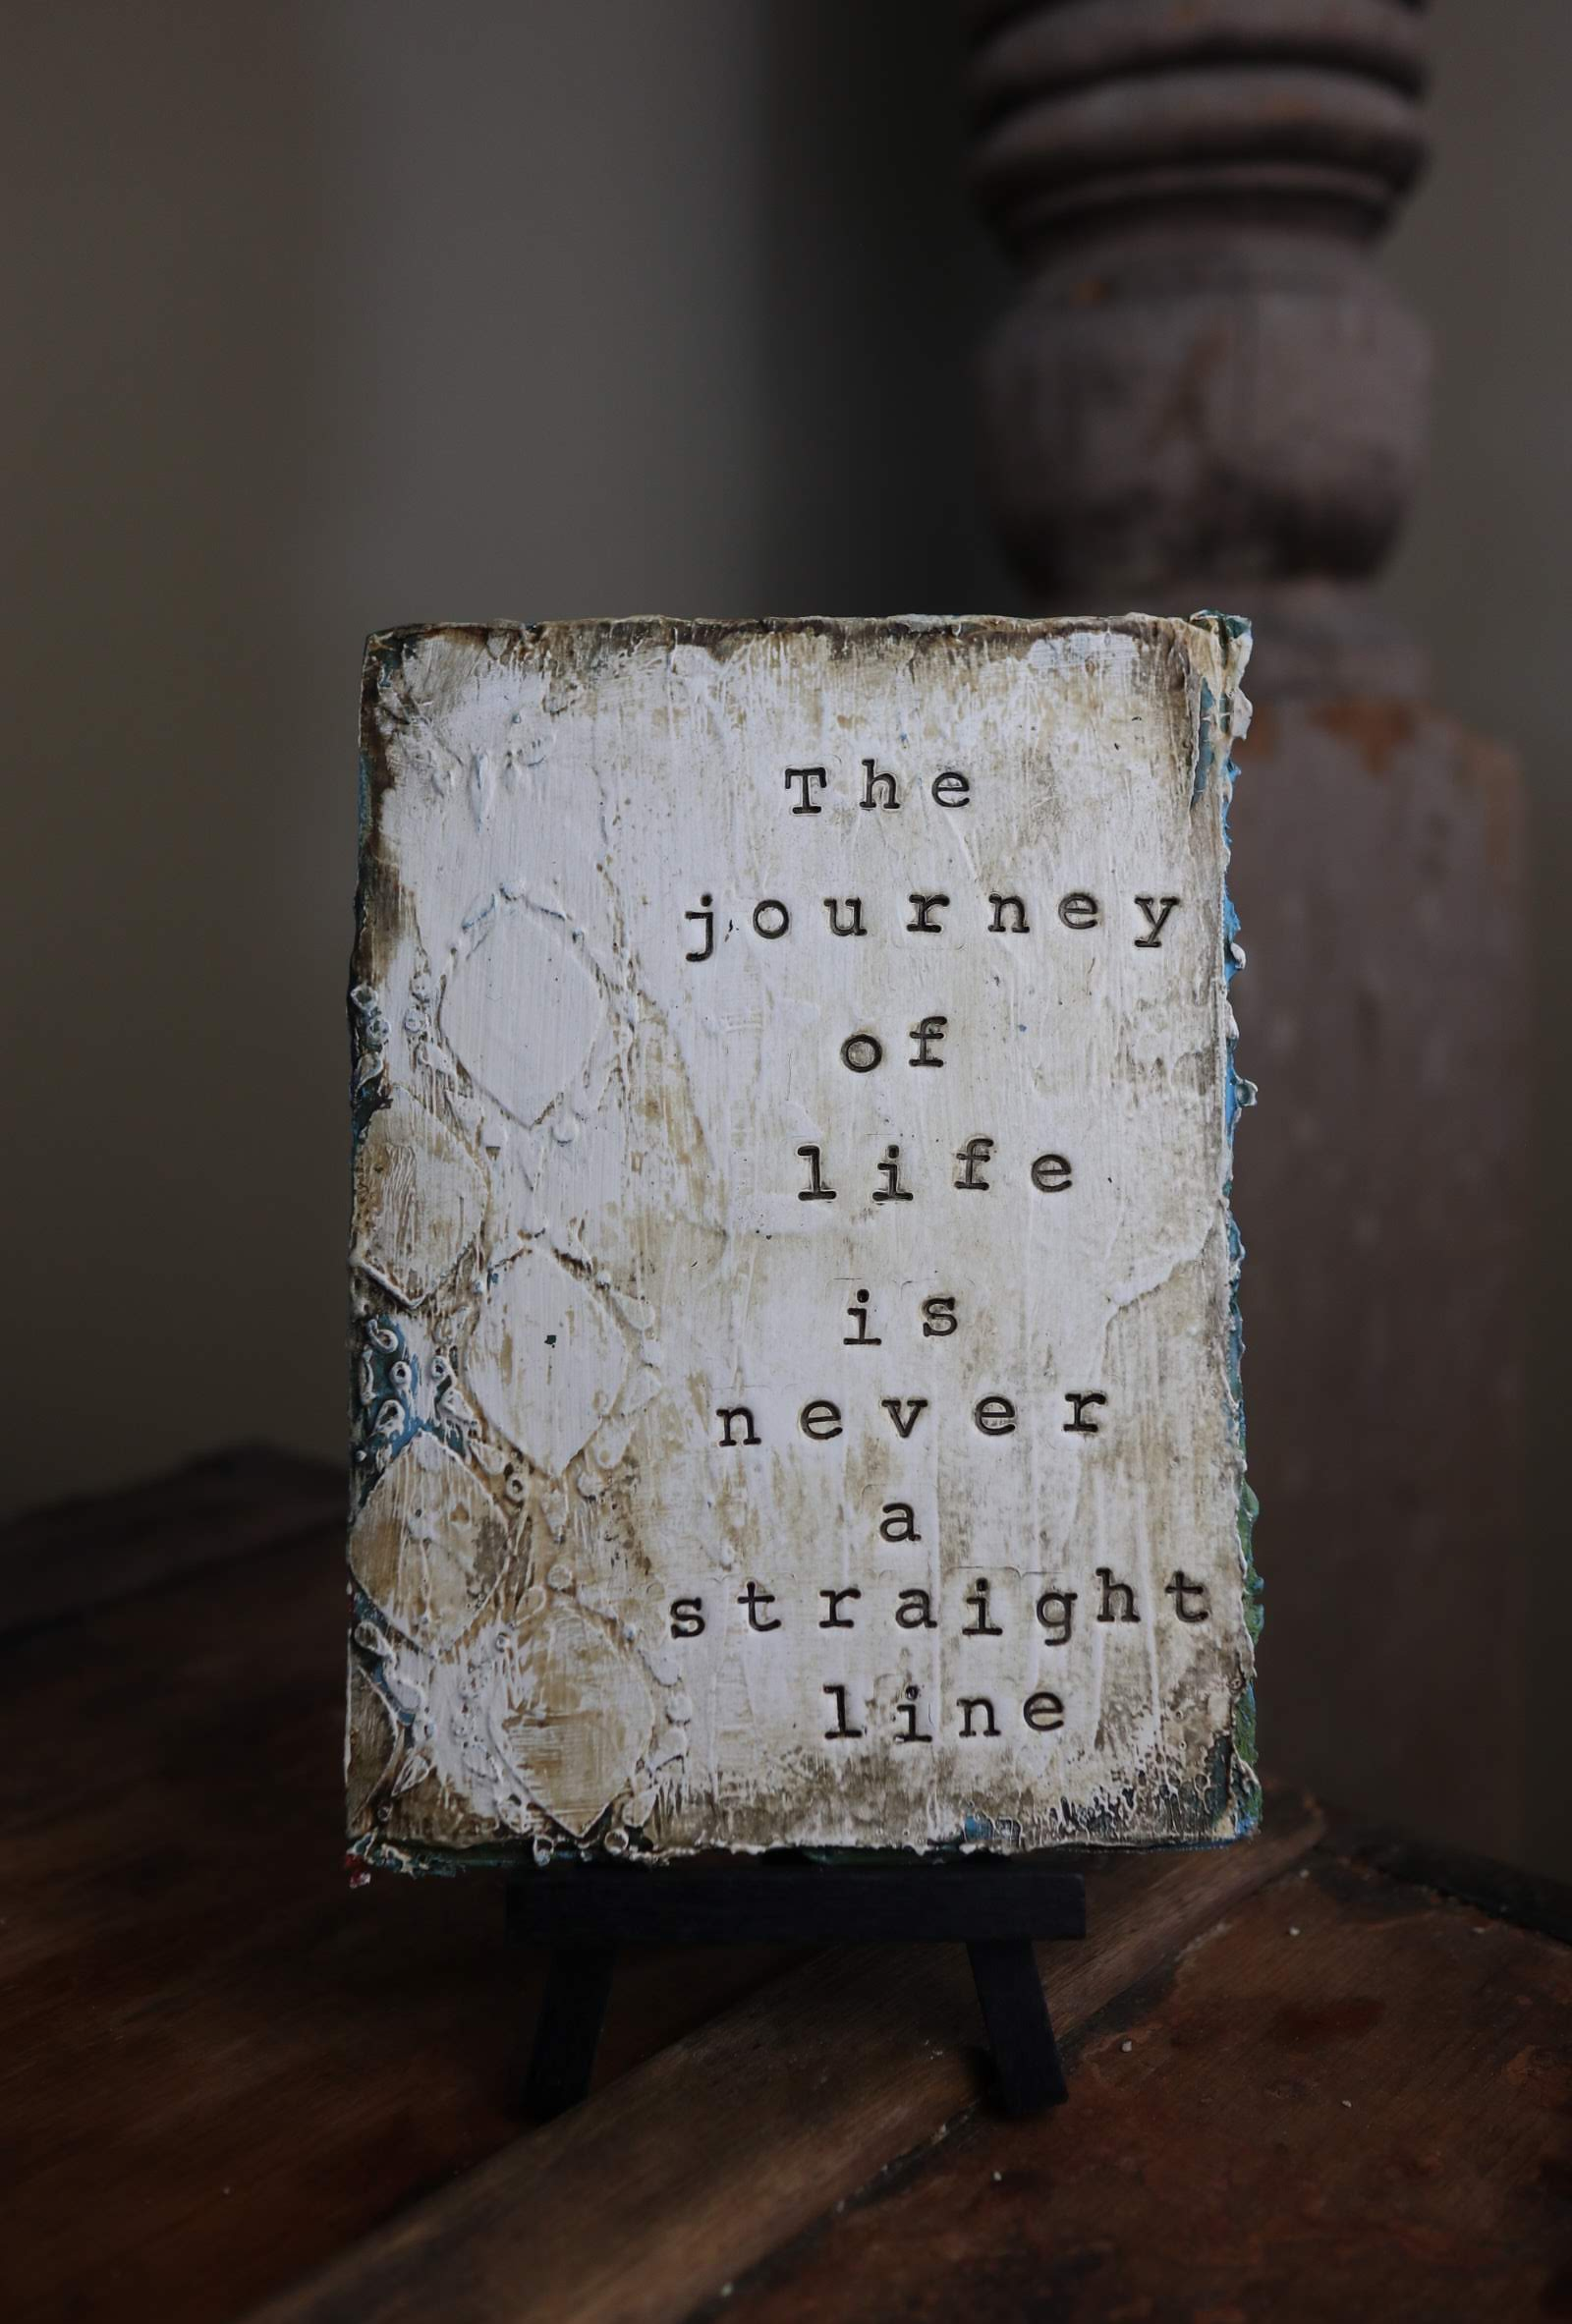 the journey of life is never a straight line